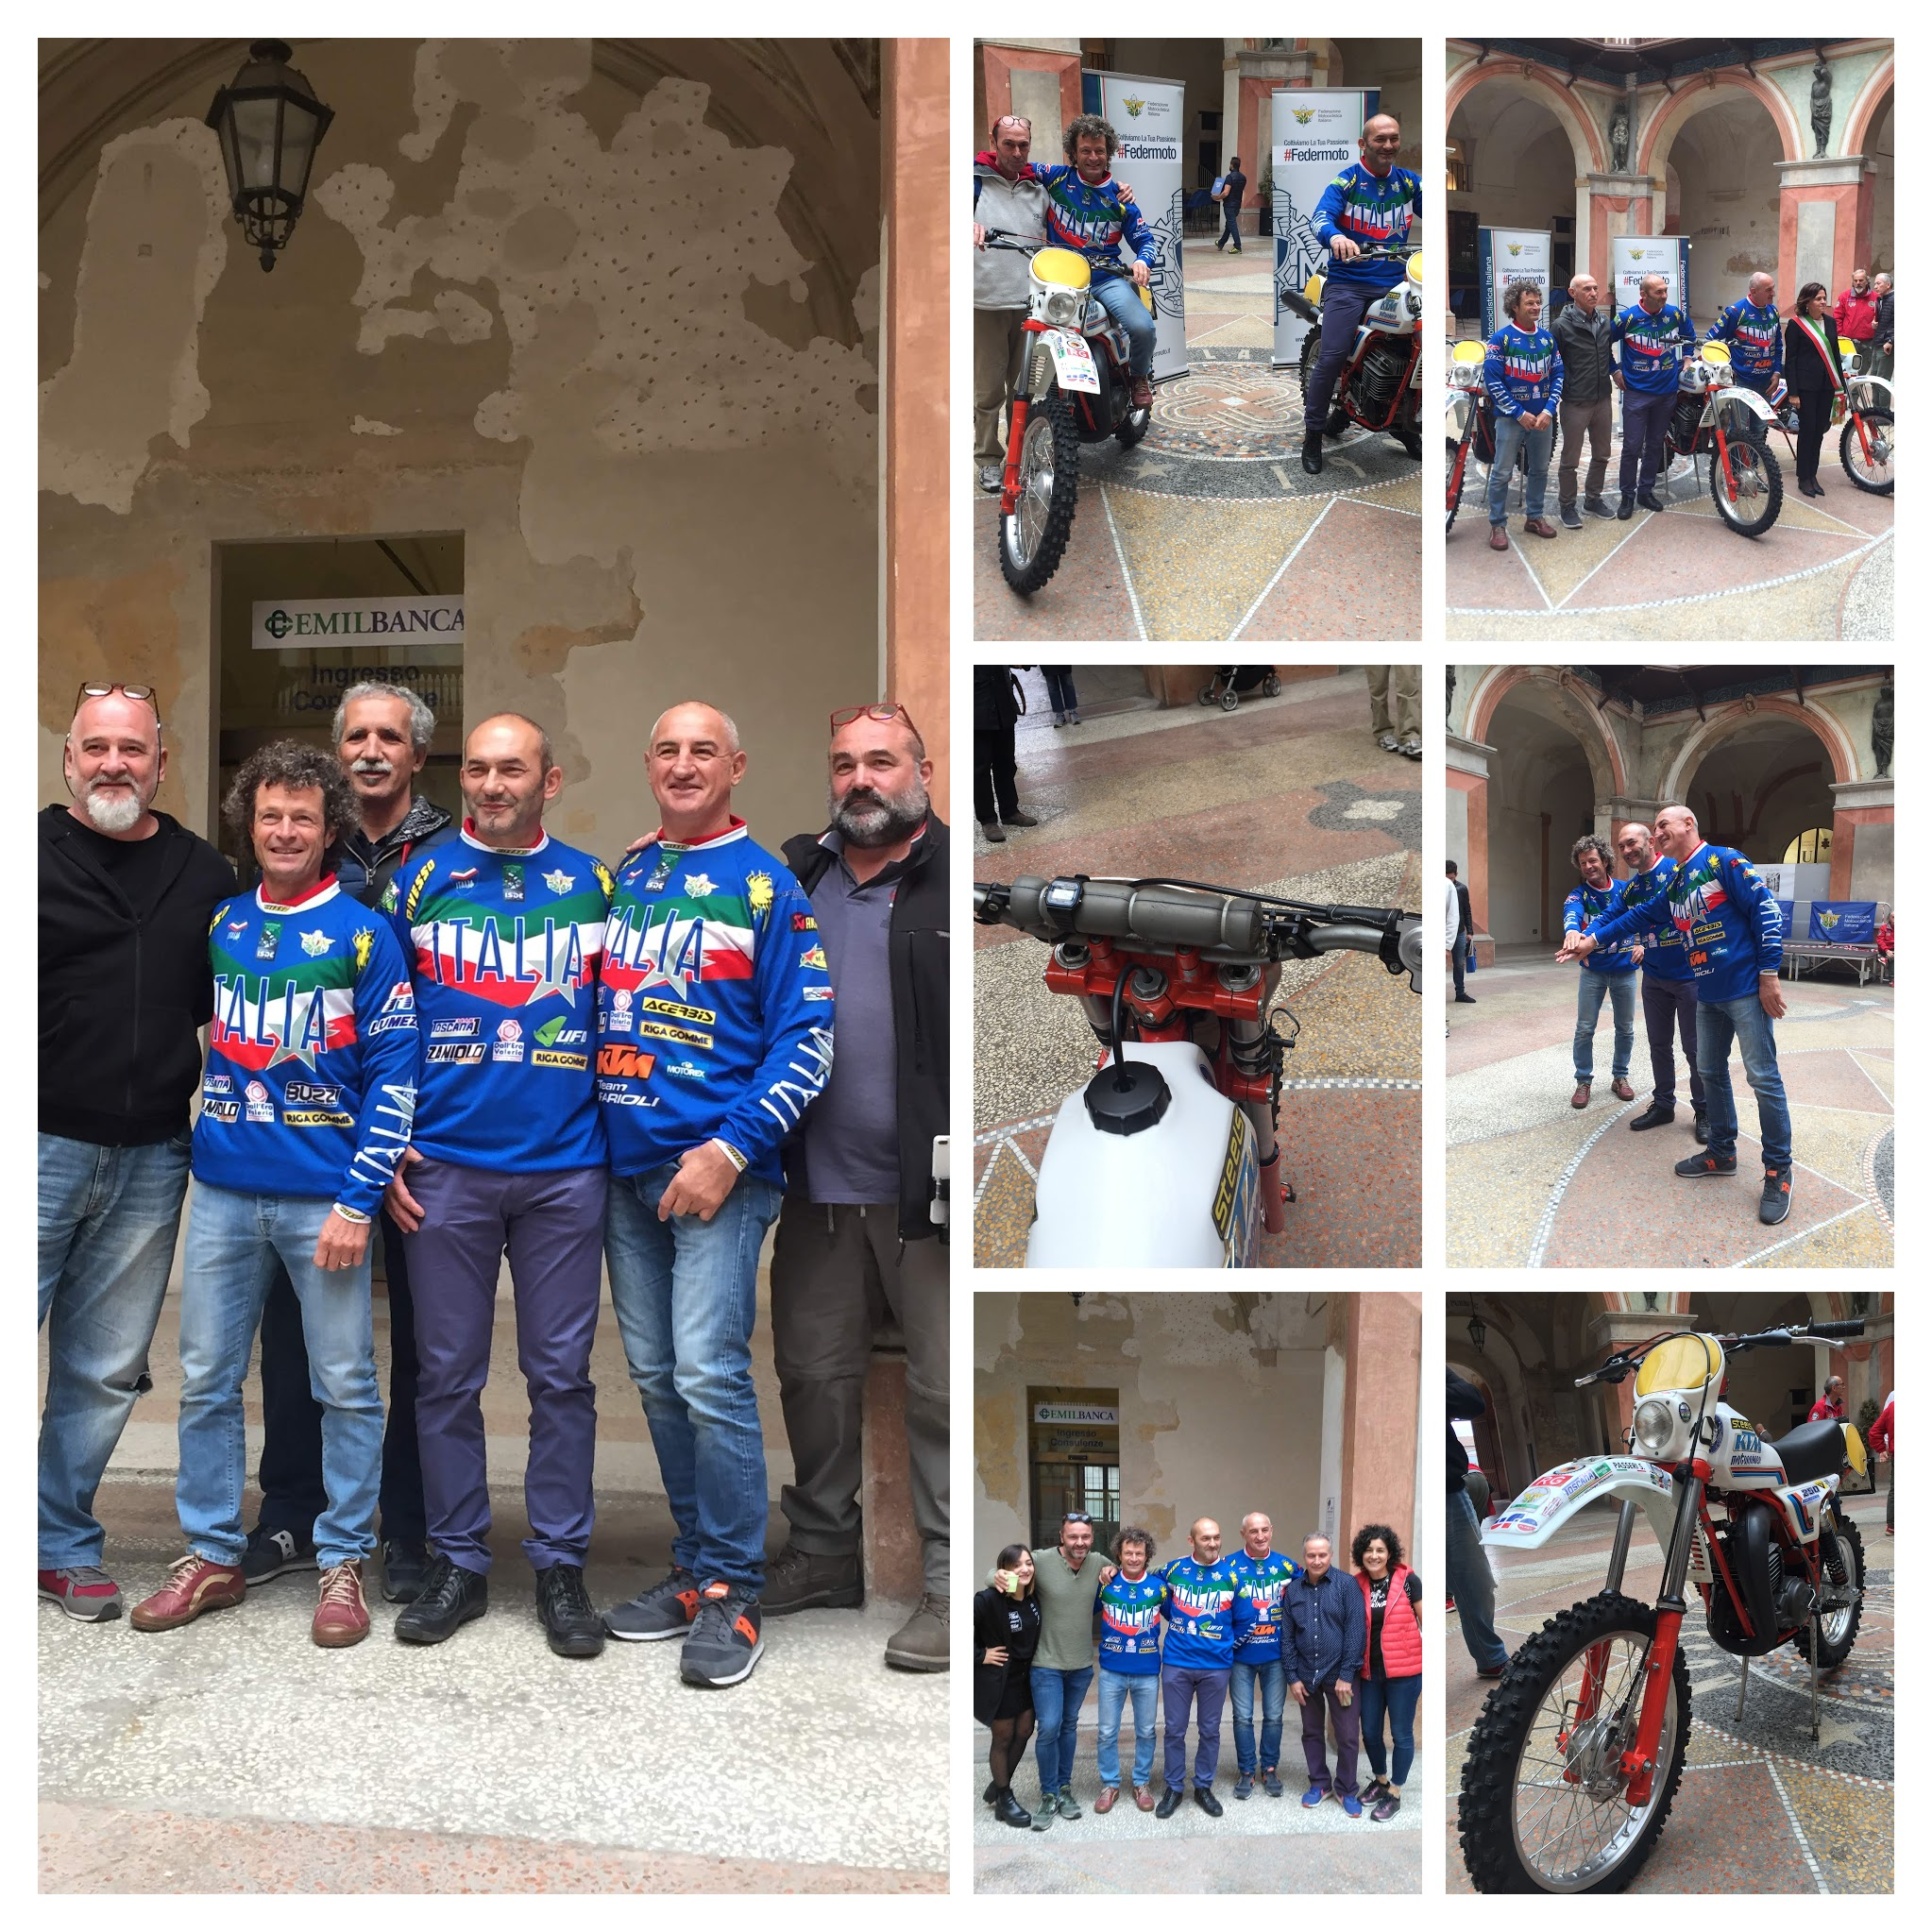 italiainpiega-evento-varie presentazione dream team veterans